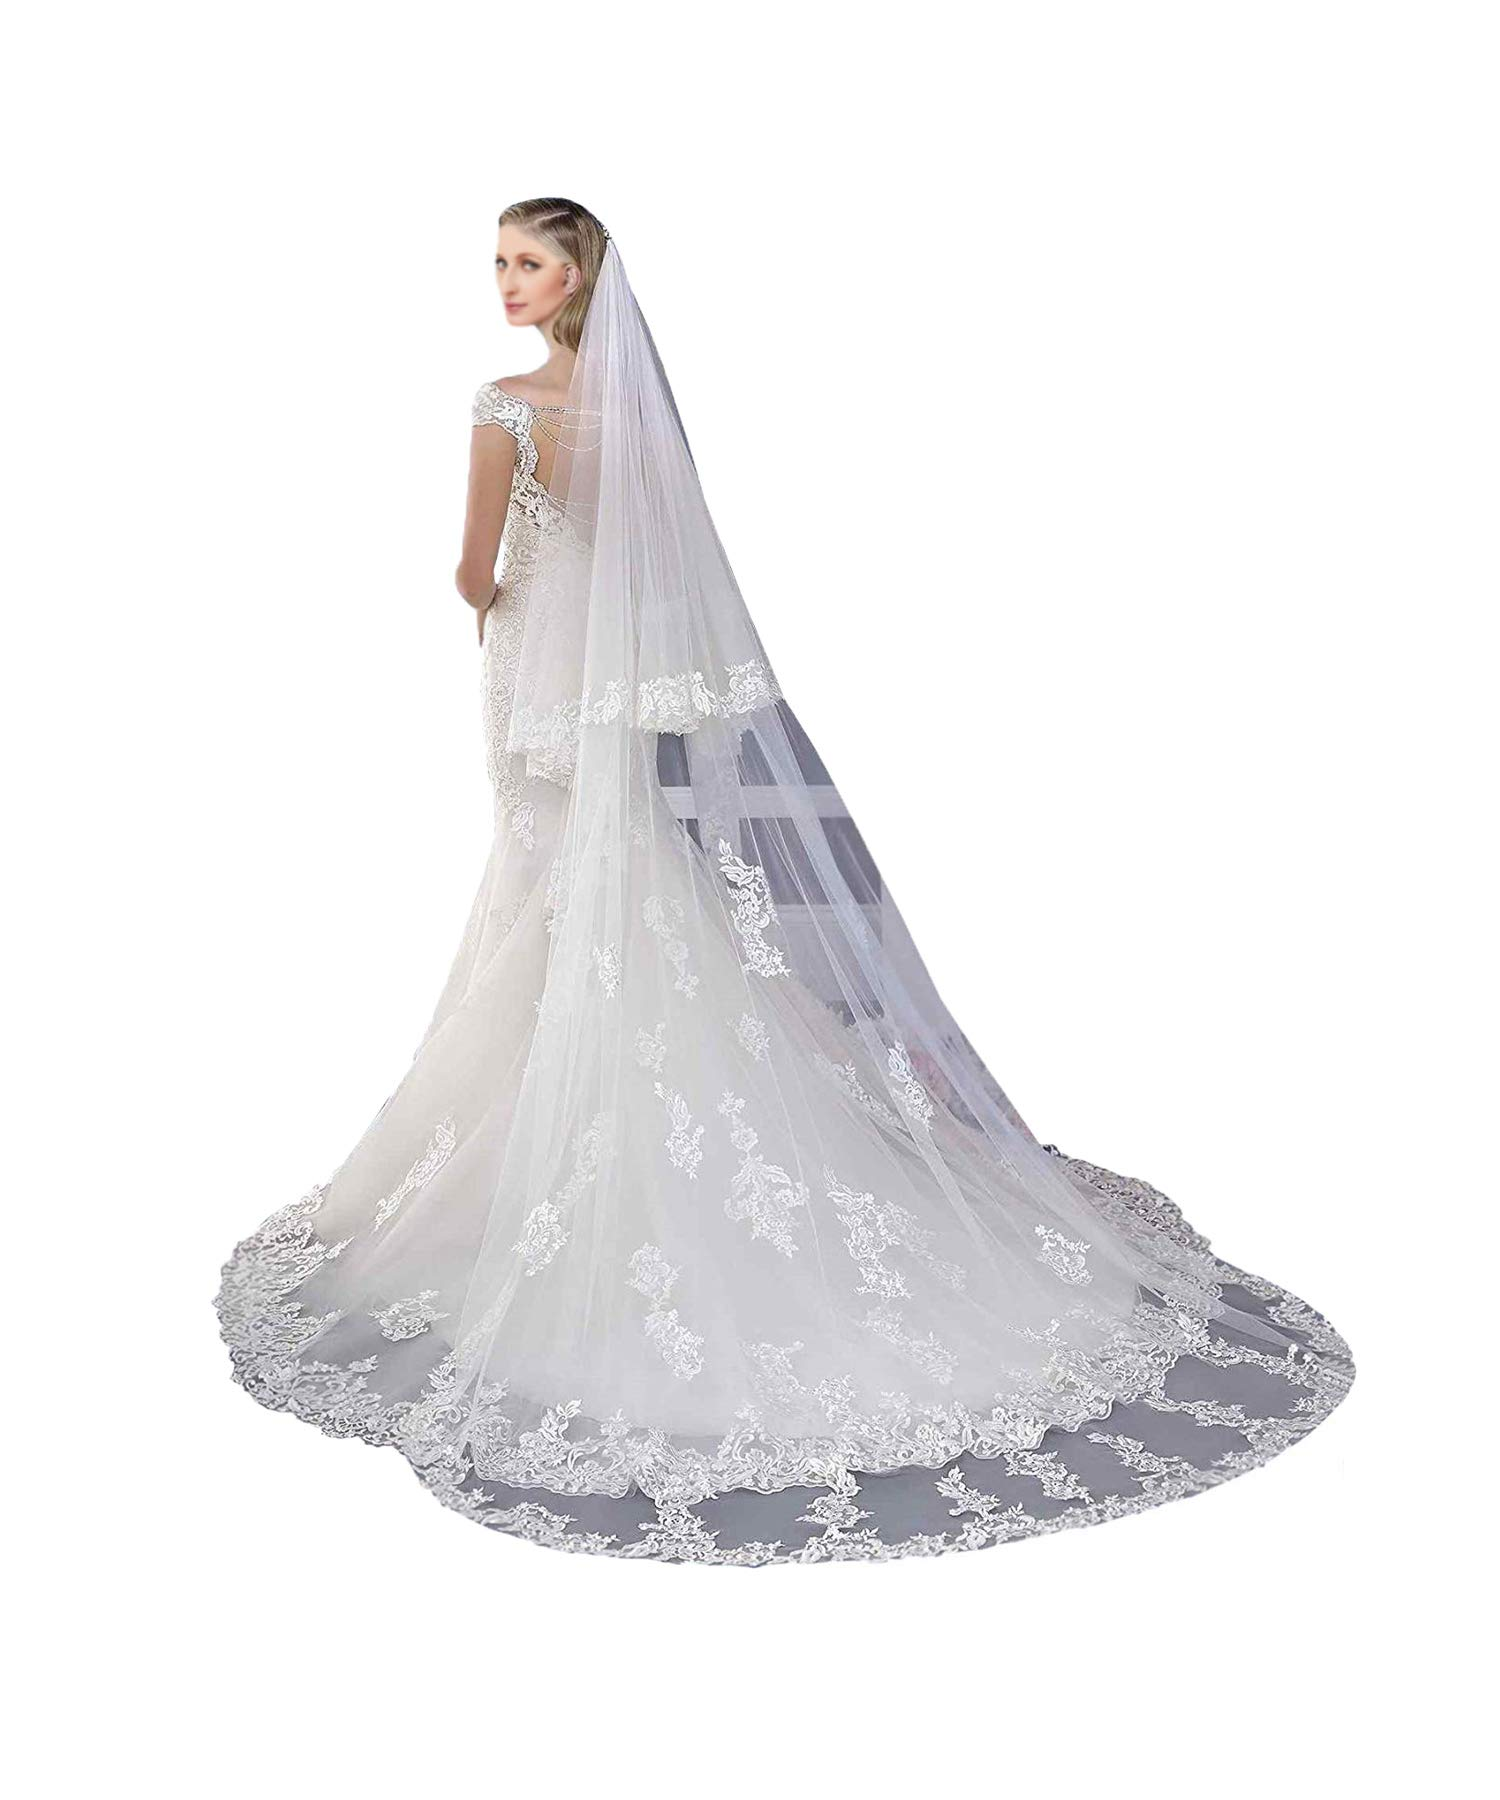 Newdeve 3M 2T White Bridal Veils Lace Edge Meter Long Free Comb by New Deve